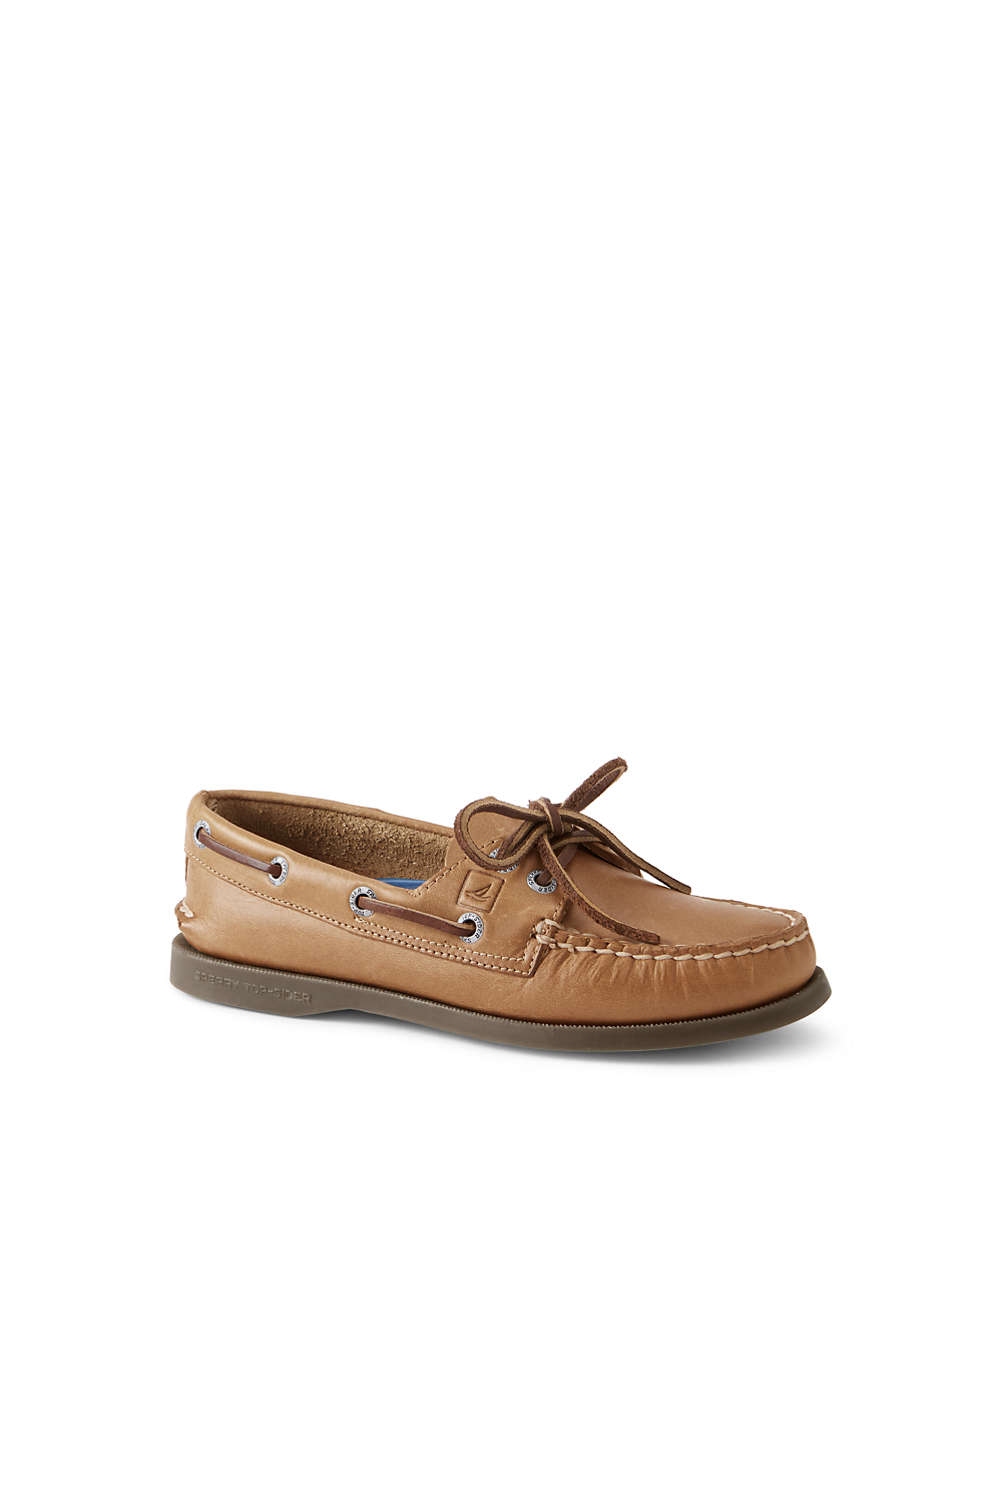 School Uniform Women S Sperry Authentic Original 2 Eye Boat Shoes